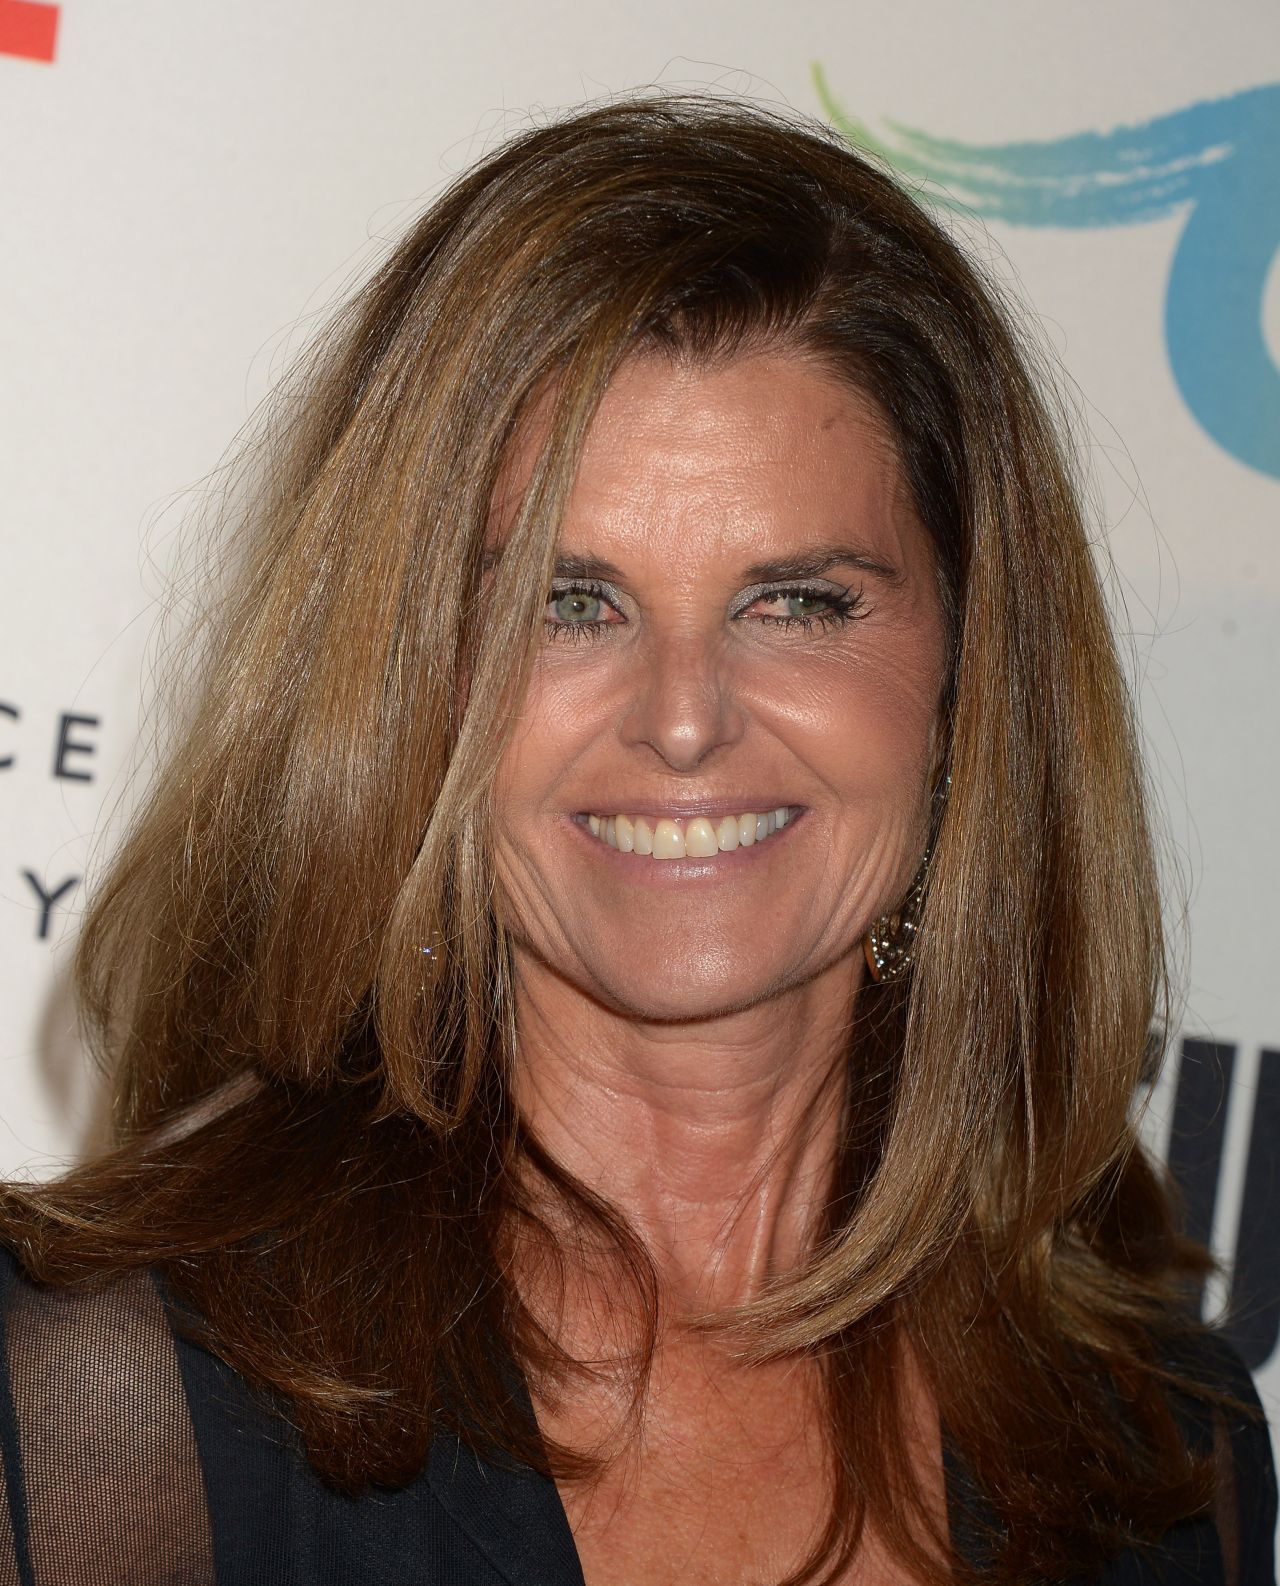 Maria Shriver Refugee Exhibit At Annenberg Space For